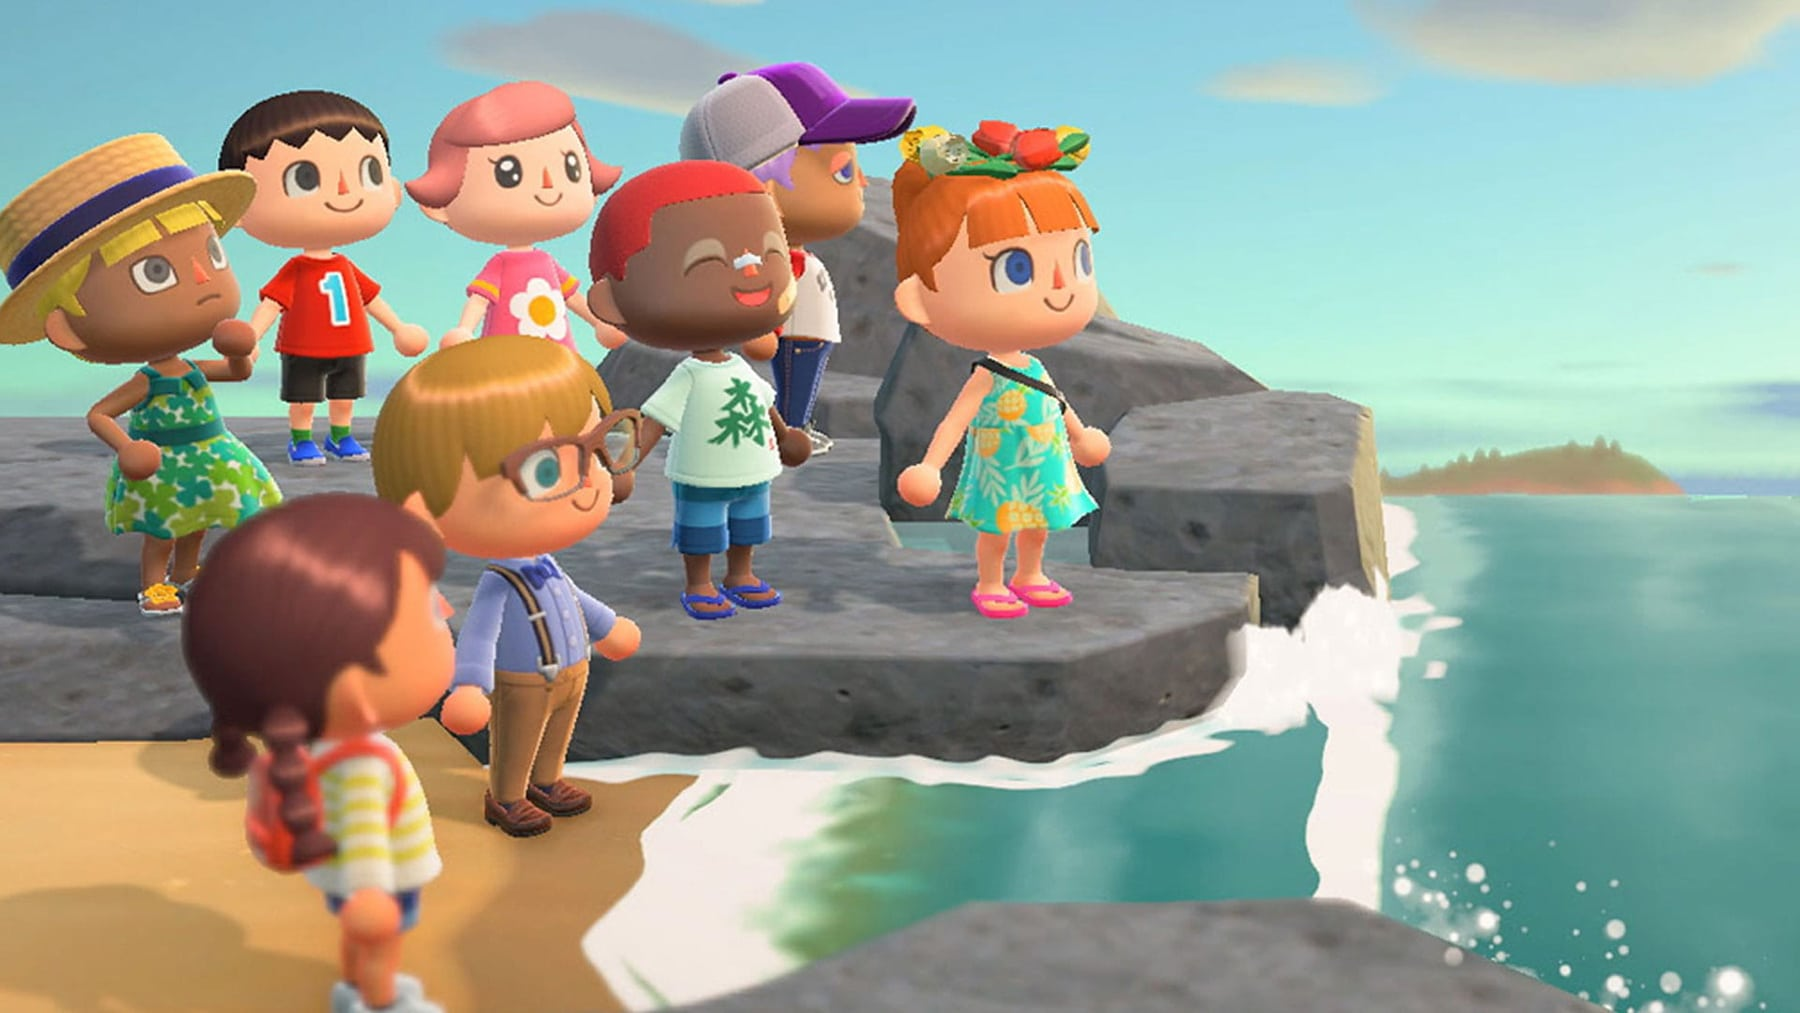 Villager Hobbies in Animal Crossing New Horizons